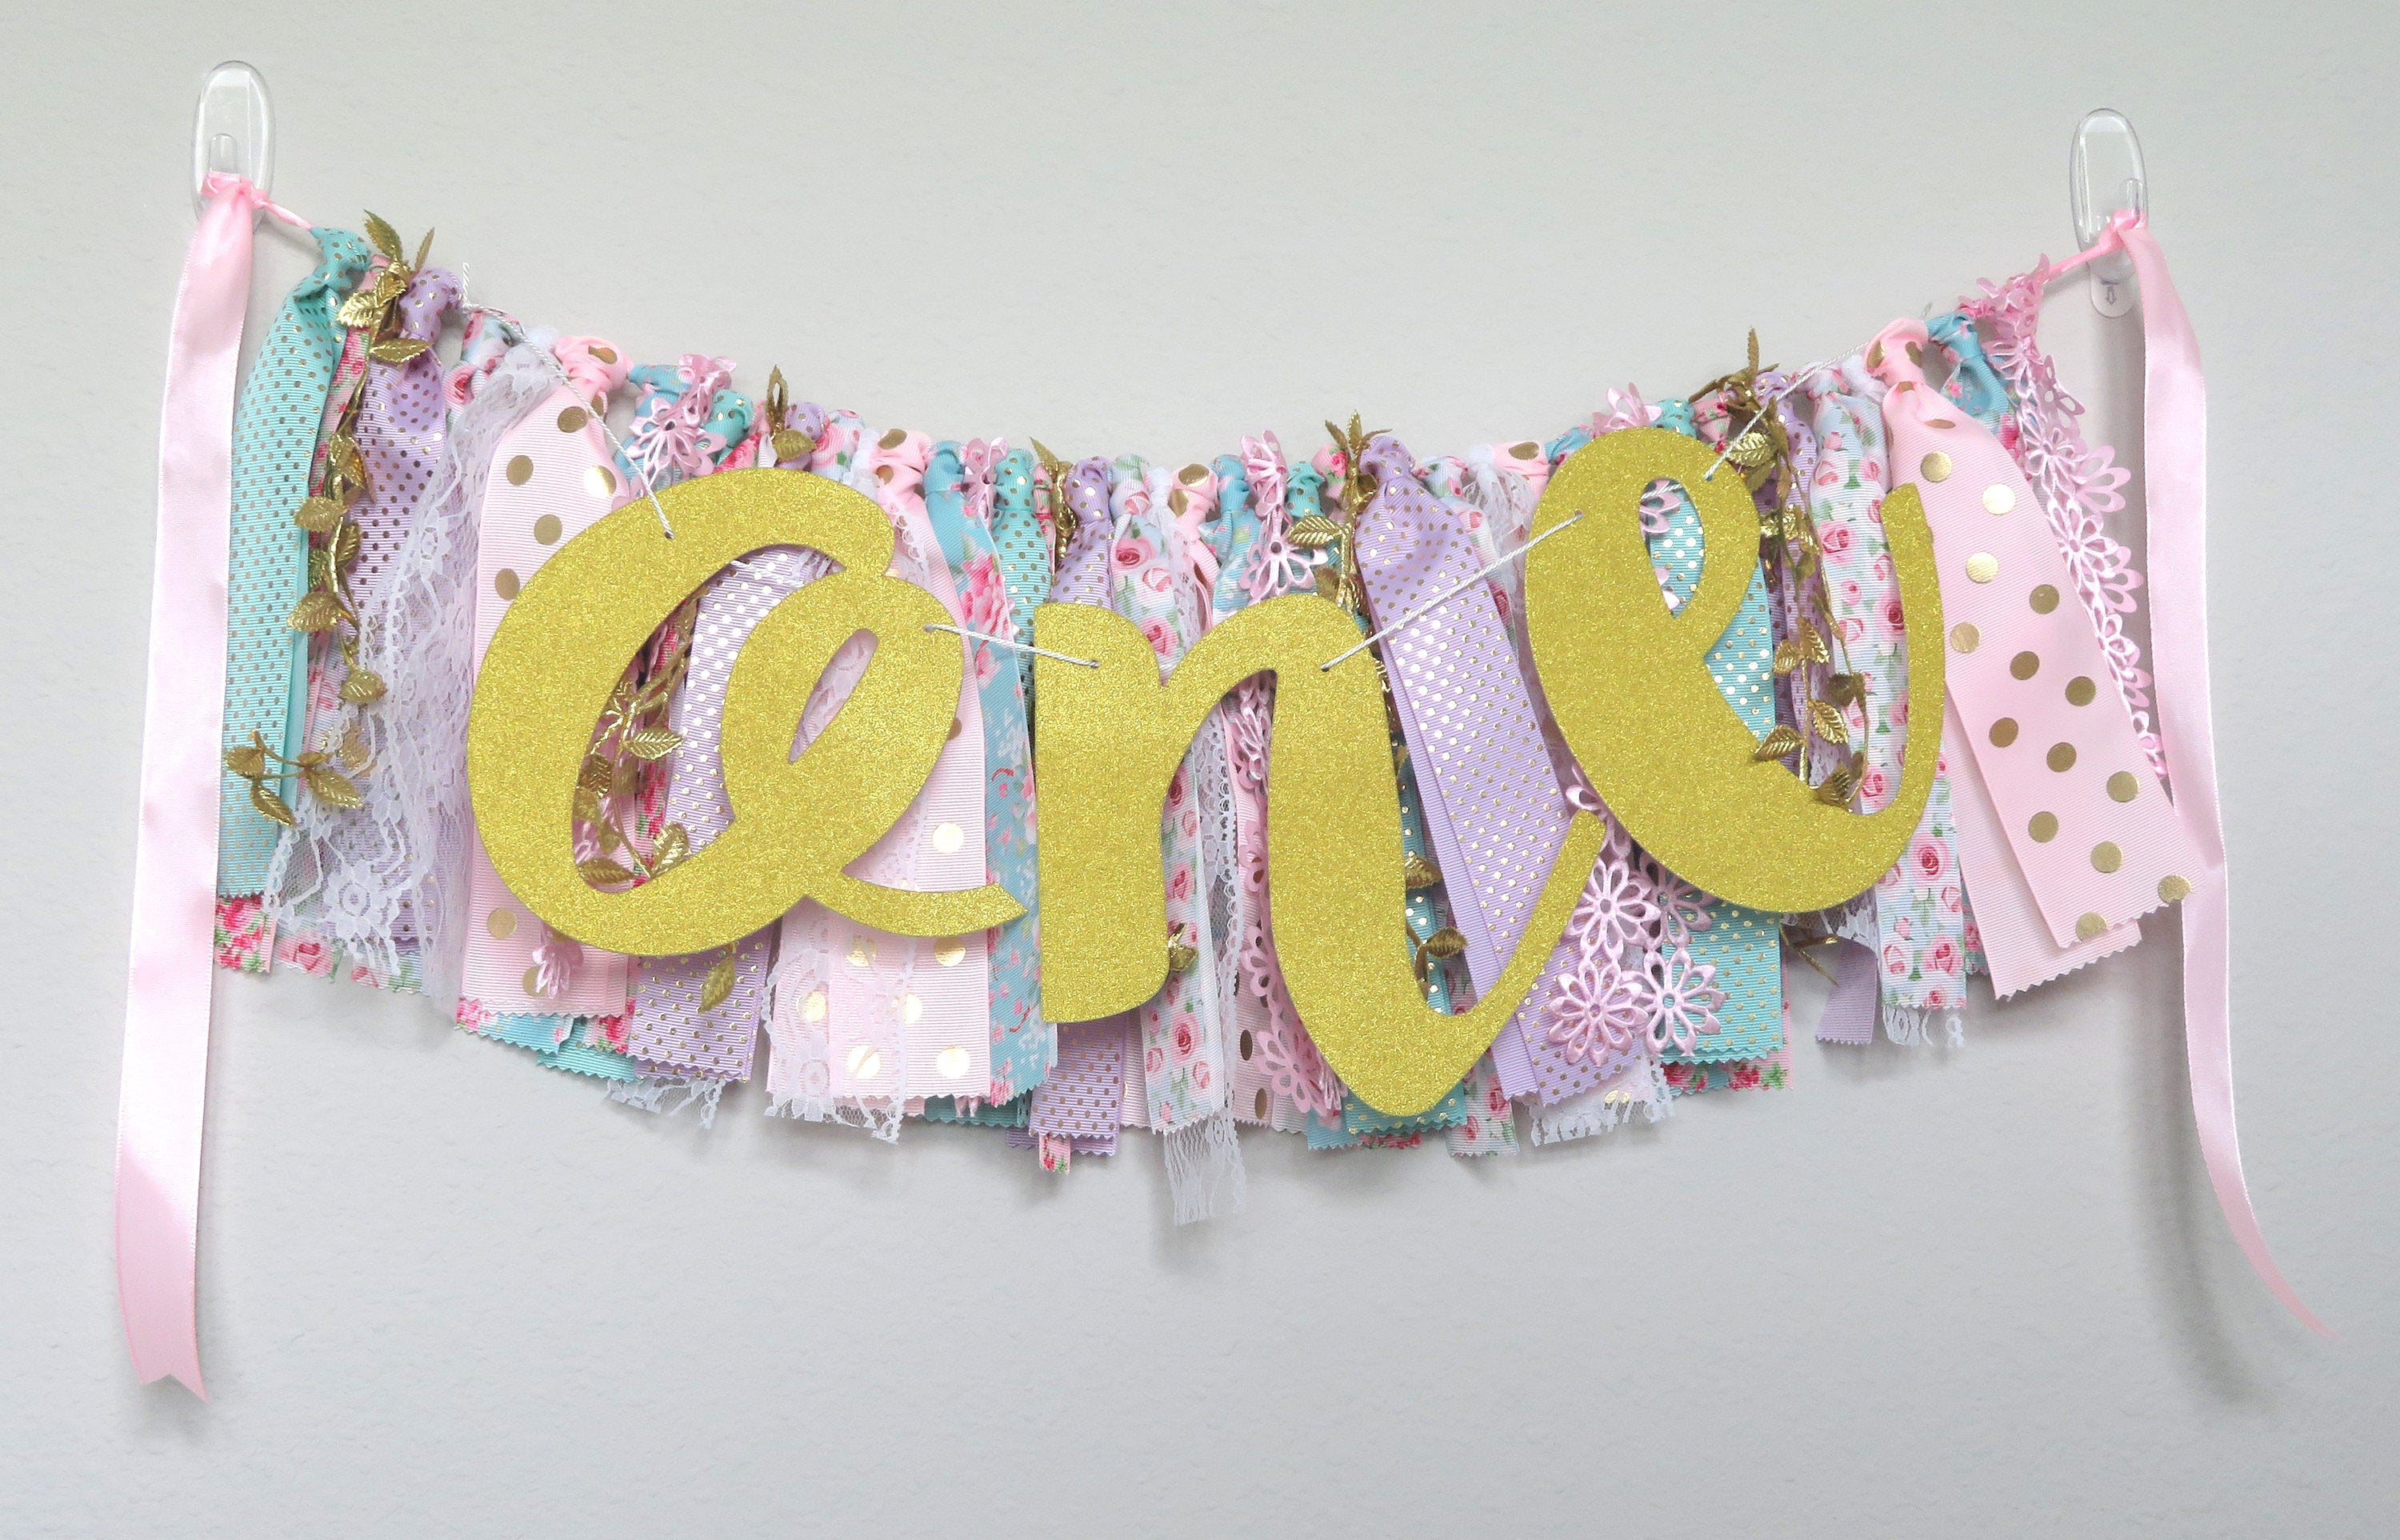 Floral First Birthday Banner for First Birthday Party -high chair banner, wall banner, flower pennant, floral party decor, 1st birthday girl